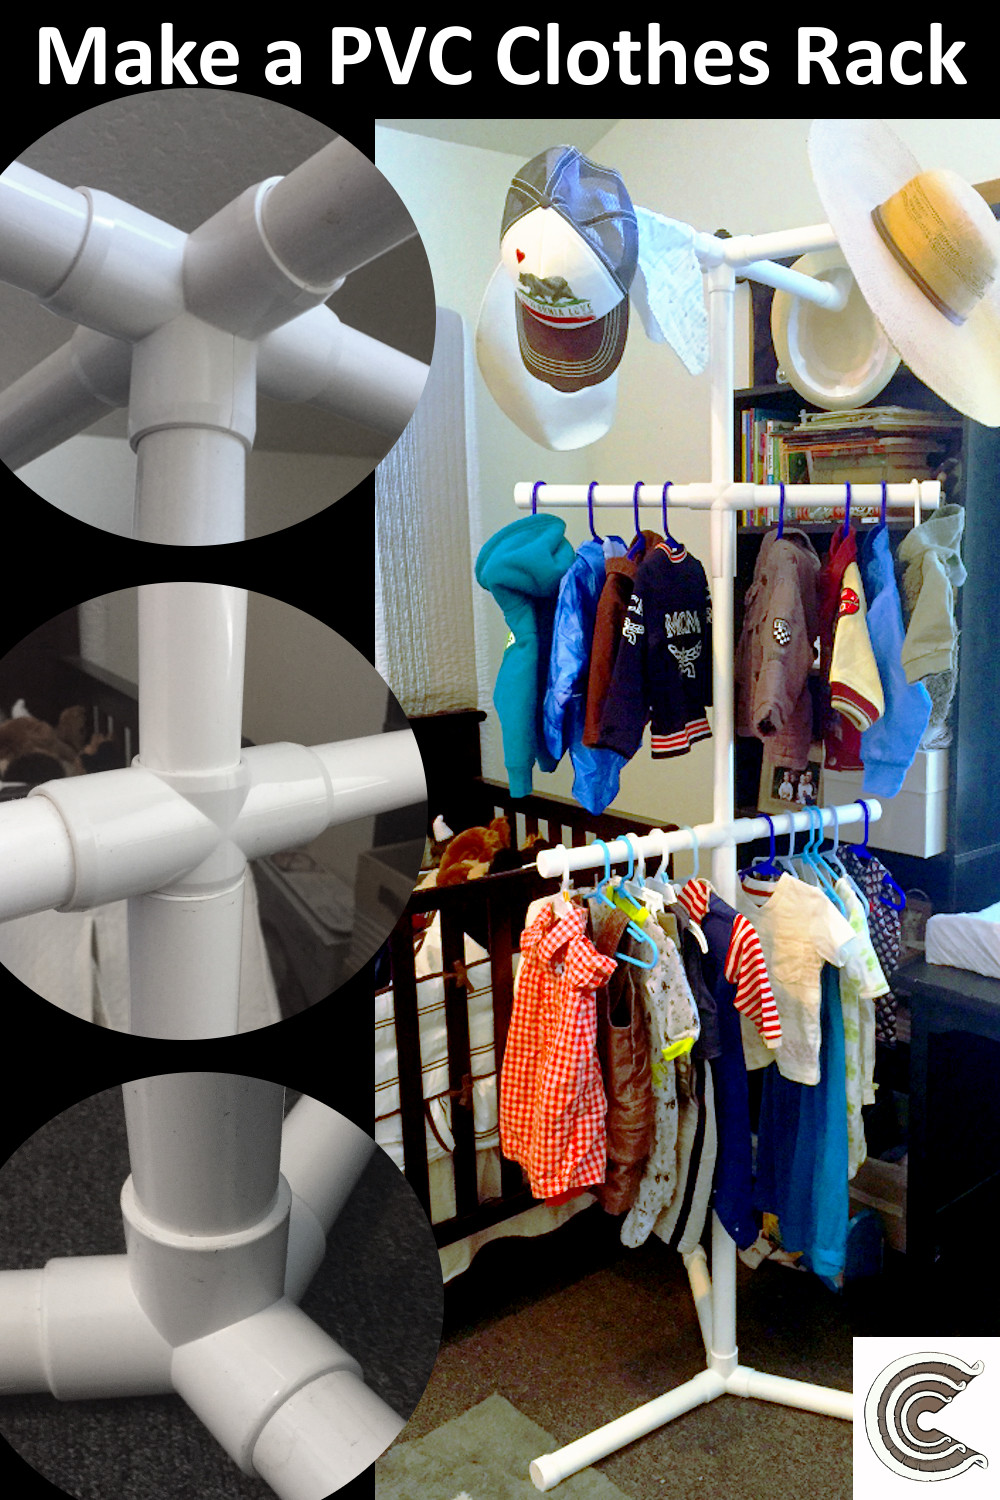 Make a PVC Clothes Rack